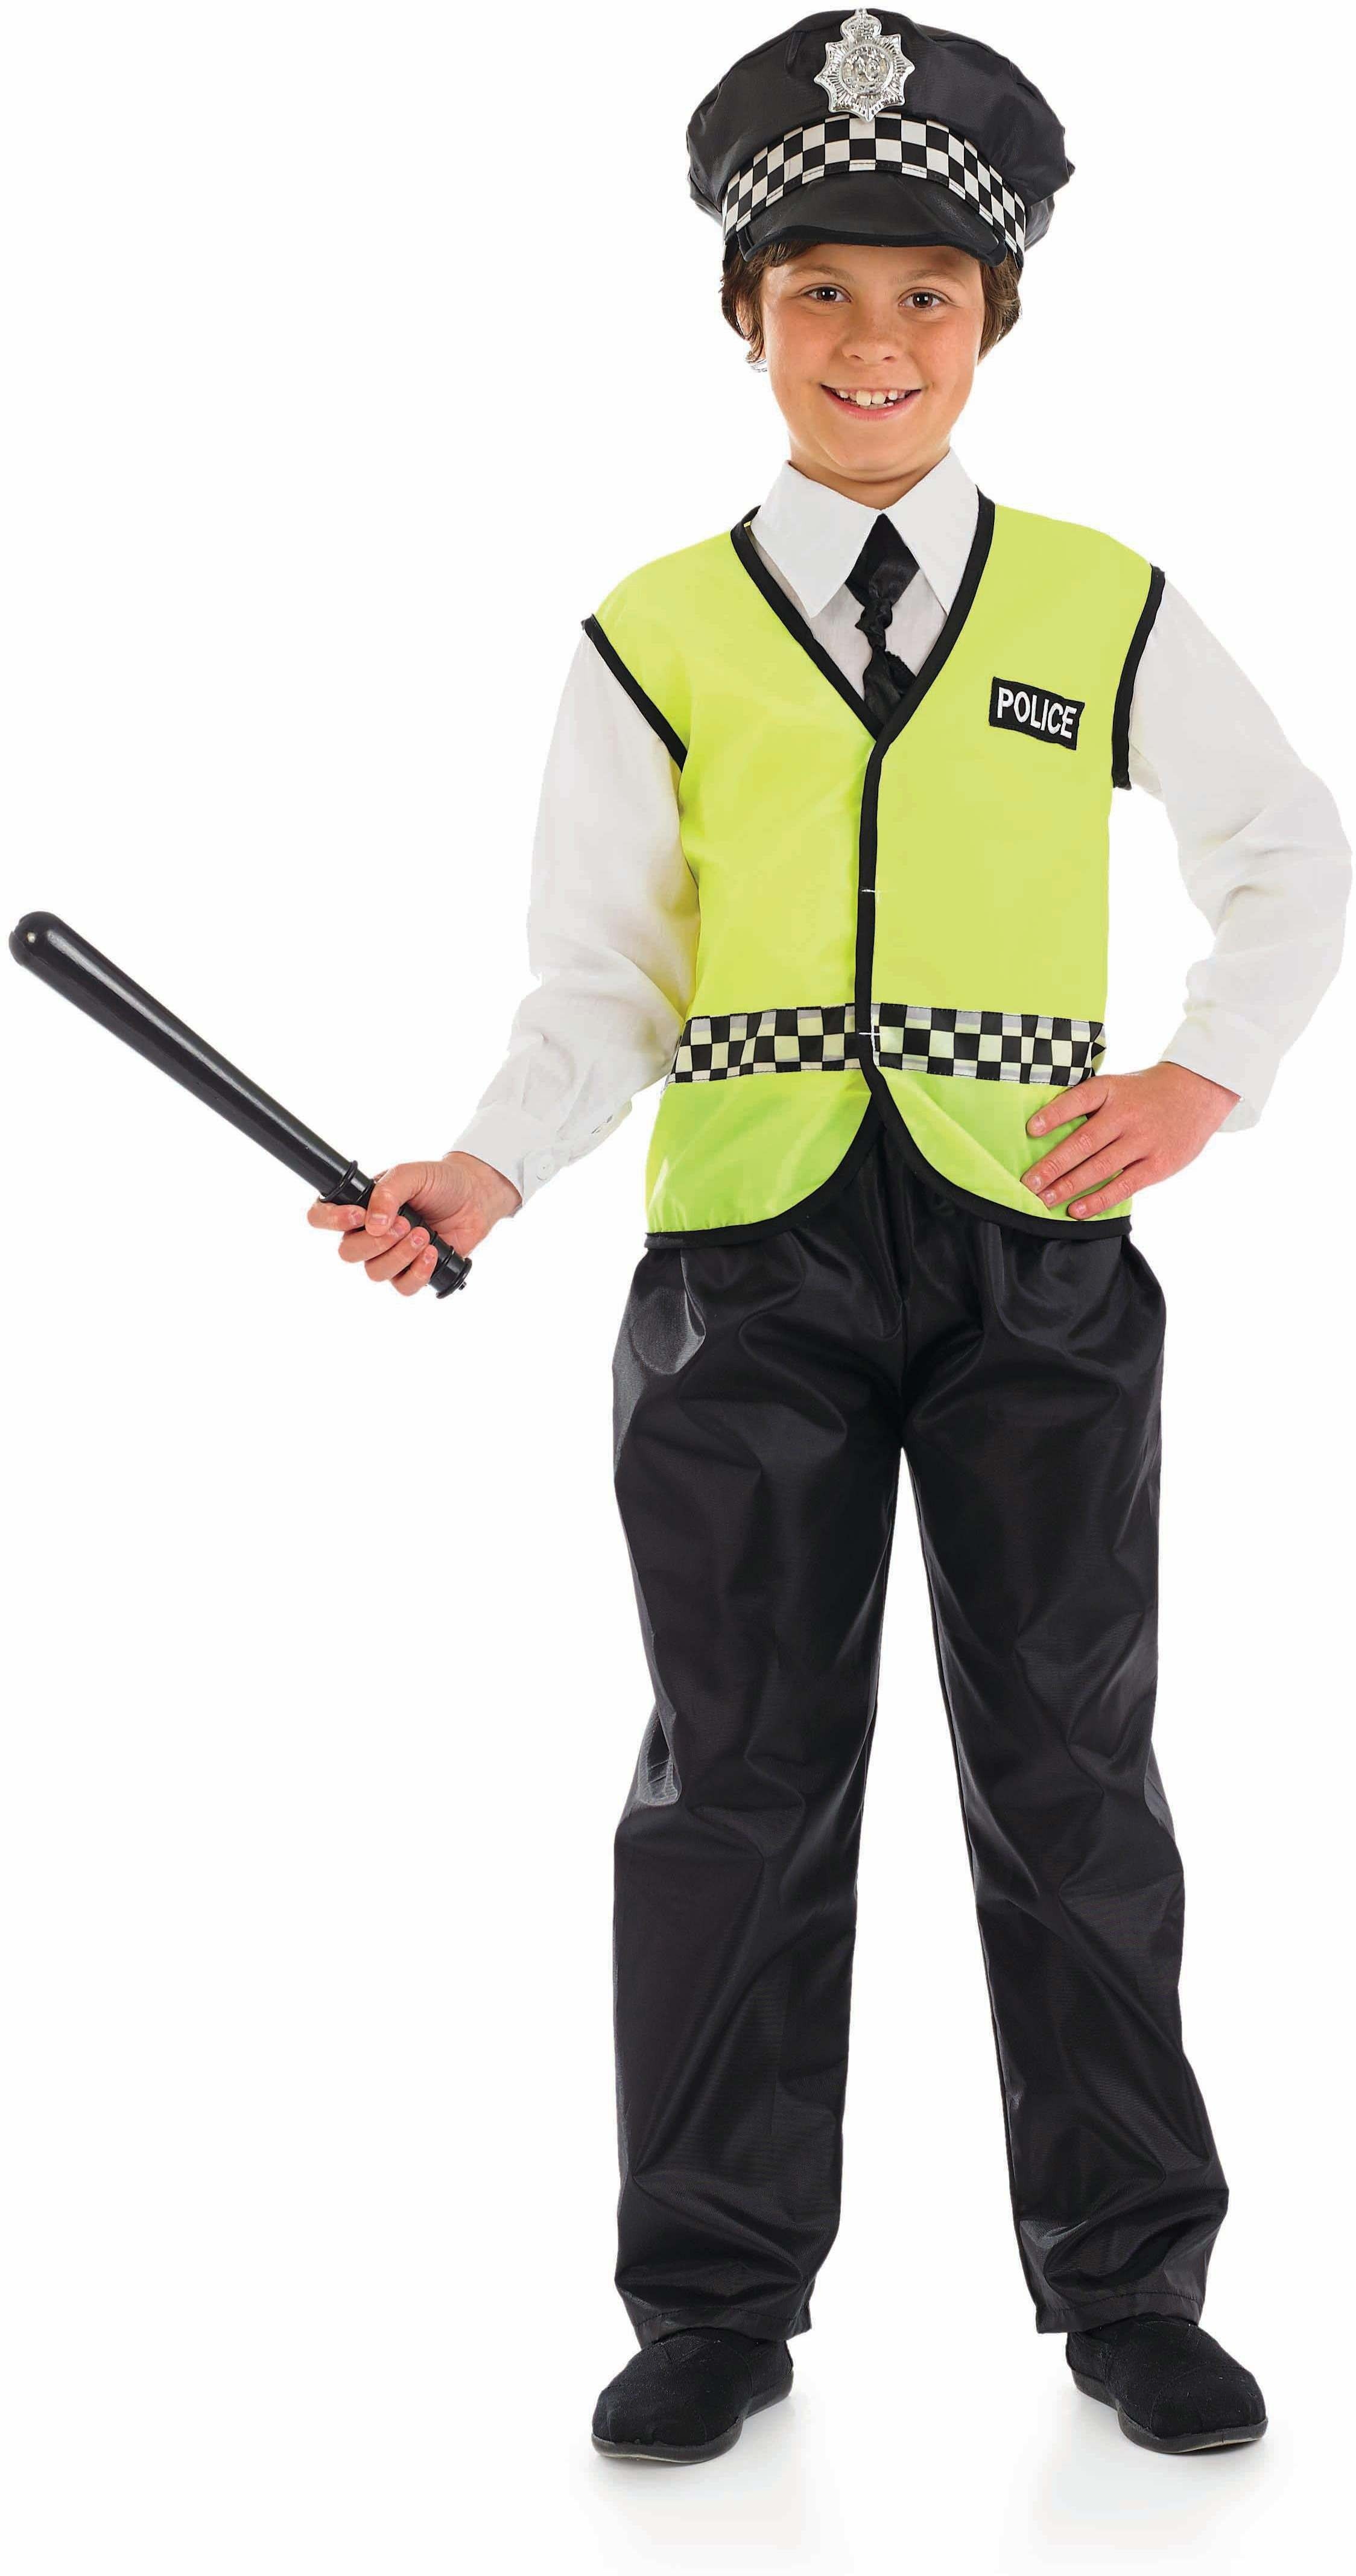 Boys Policeman Cops/Robbers Outfit - (Black, White, Yellow)